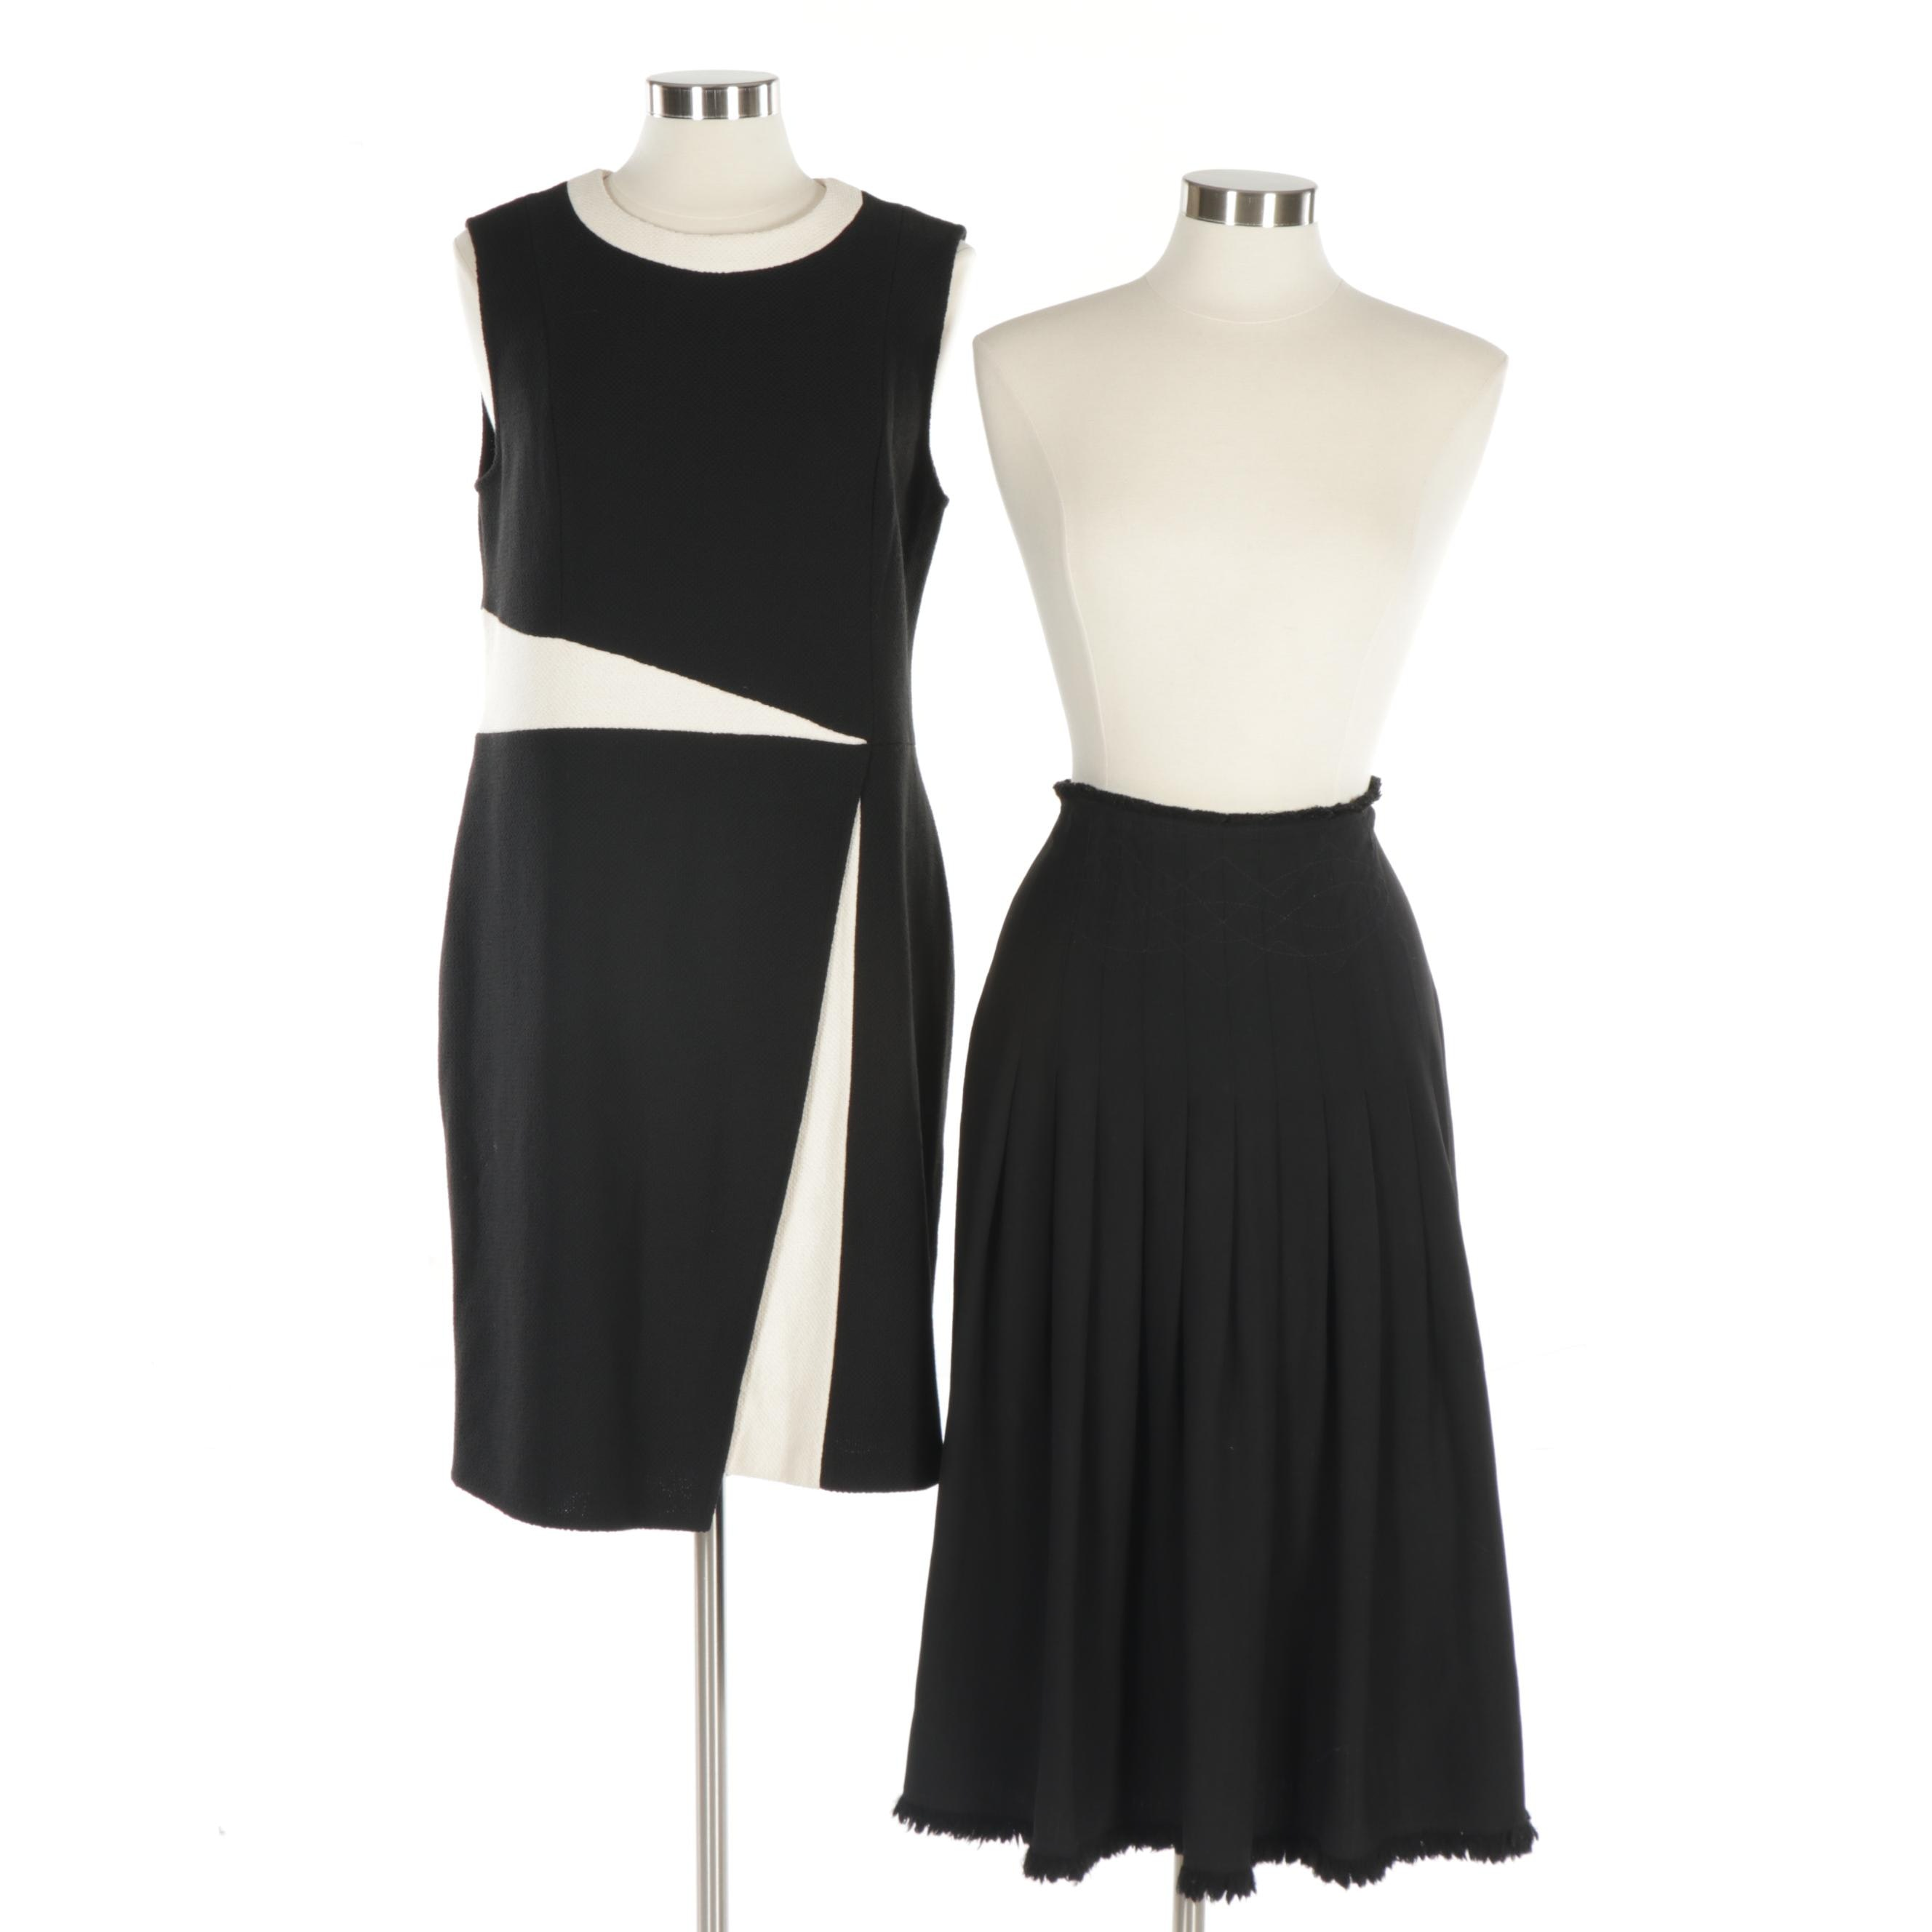 Women's St. John Sleeveless Knit Dress and Max Mara Weekend Black Pleated Skirt